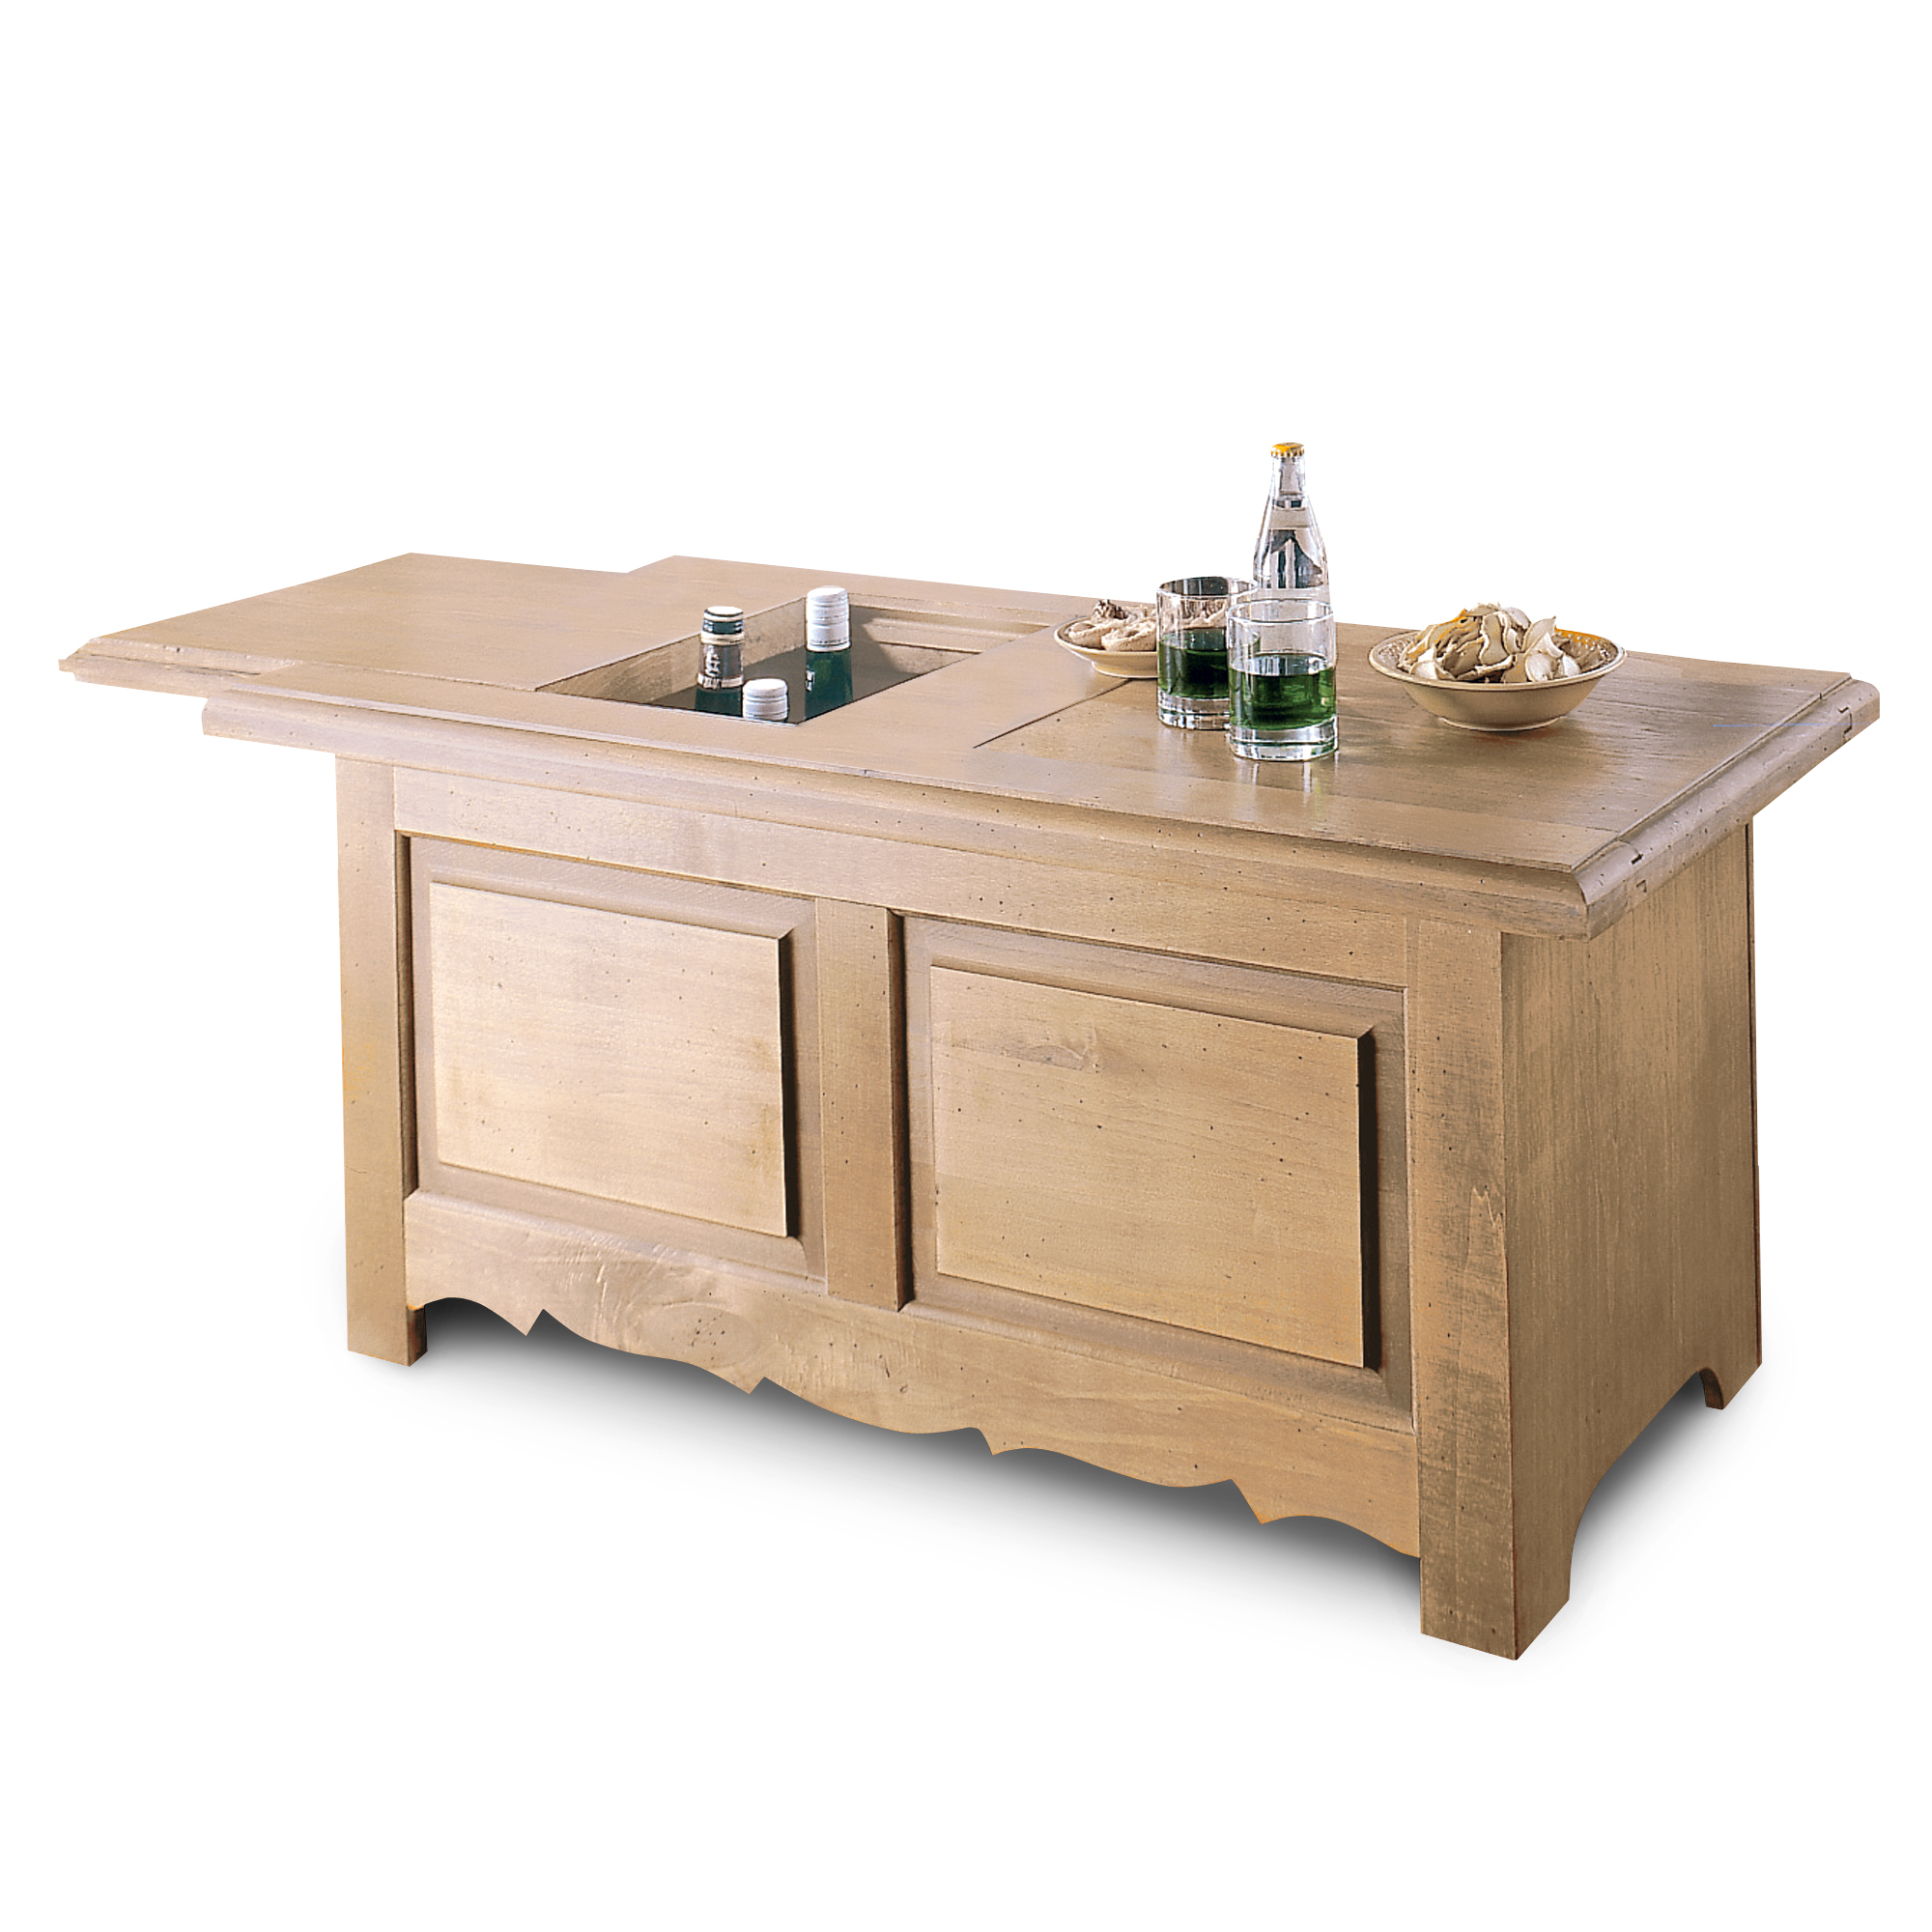 Table basse bar fait maison - Table basse fabrication maison ...